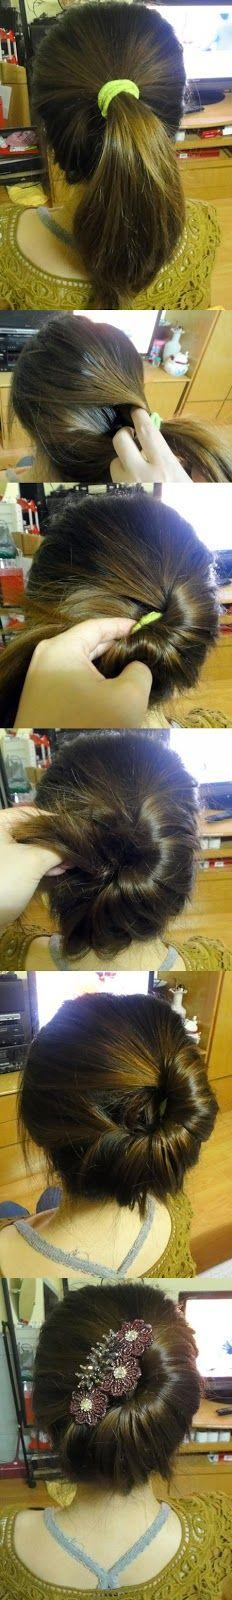 hairstyles tutorial: Make A Chignon For Your Hair: Idea, Hairstyles, Hairdos, Hair Styles, Makeup, Updos, Hair Do, Side Bun, French Twist